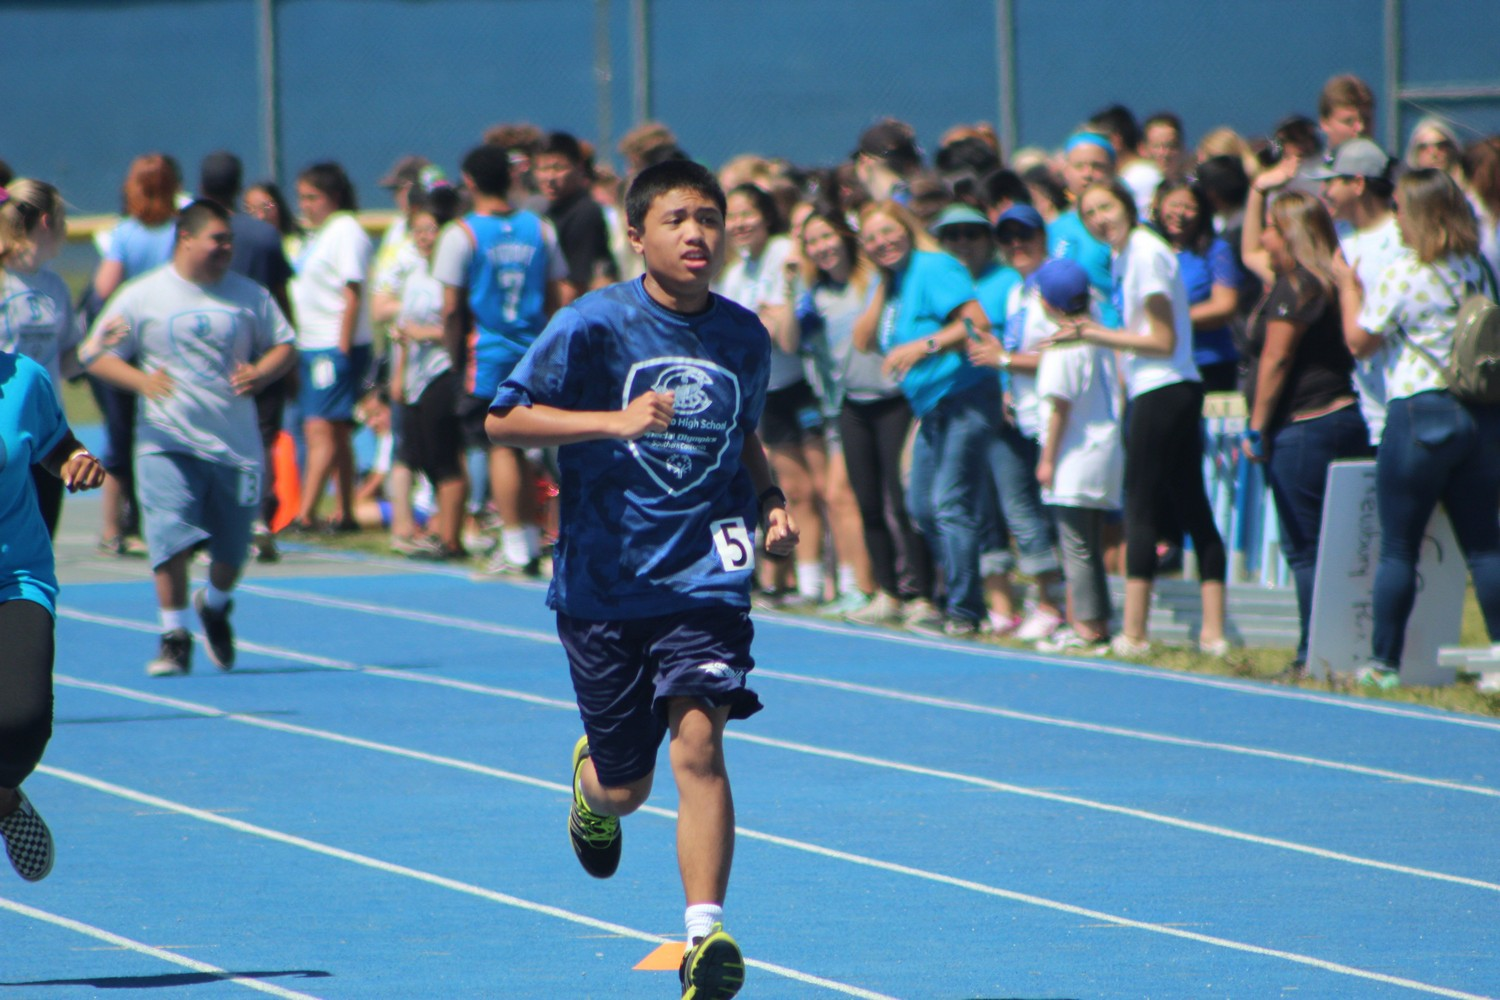 James Labsilica runs the 100 meter event at the Special Olympics Track Meet, on Friday, April 19, 2019.